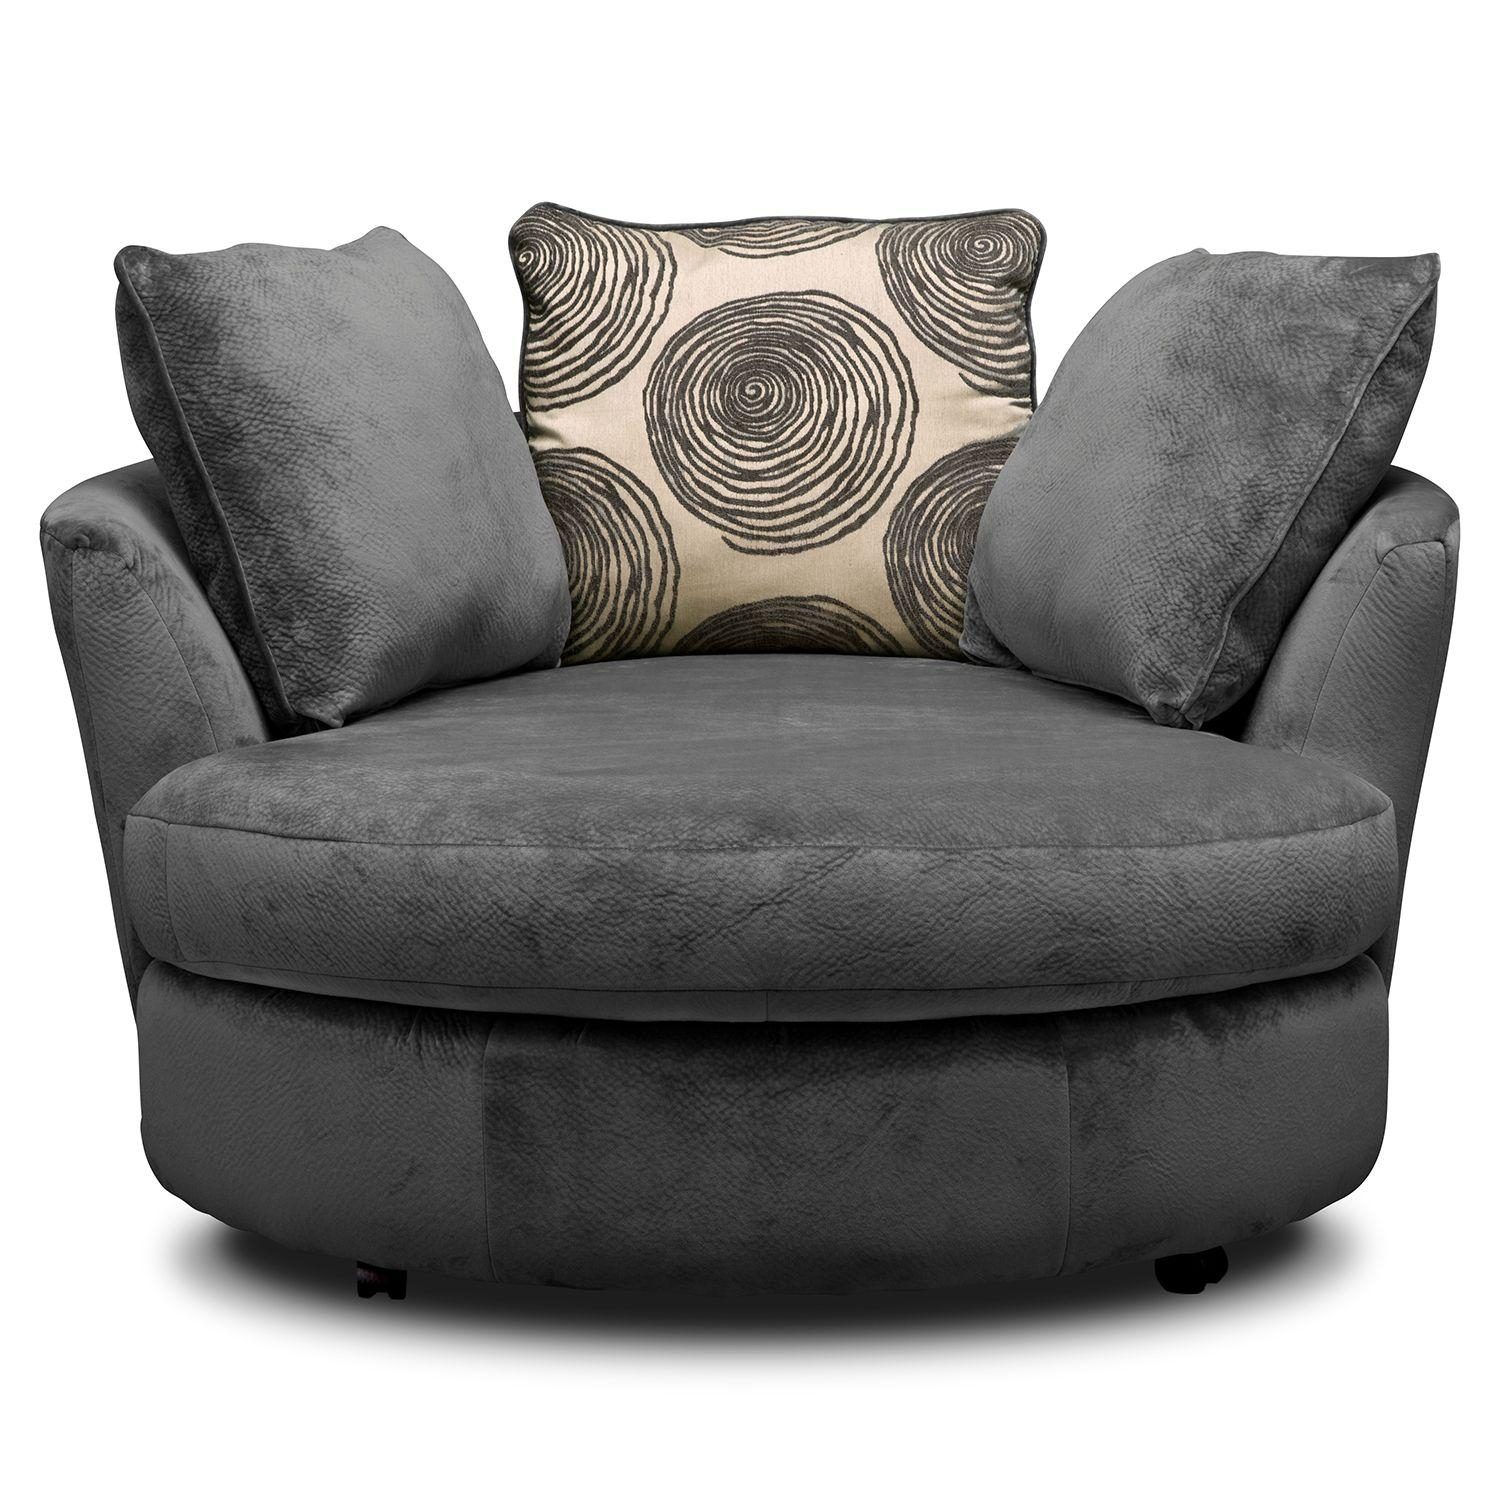 Sofas Center : Shocking Round Sofa Chair Picture Concept Modern In Within Large Sofa Chairs (Image 18 of 20)